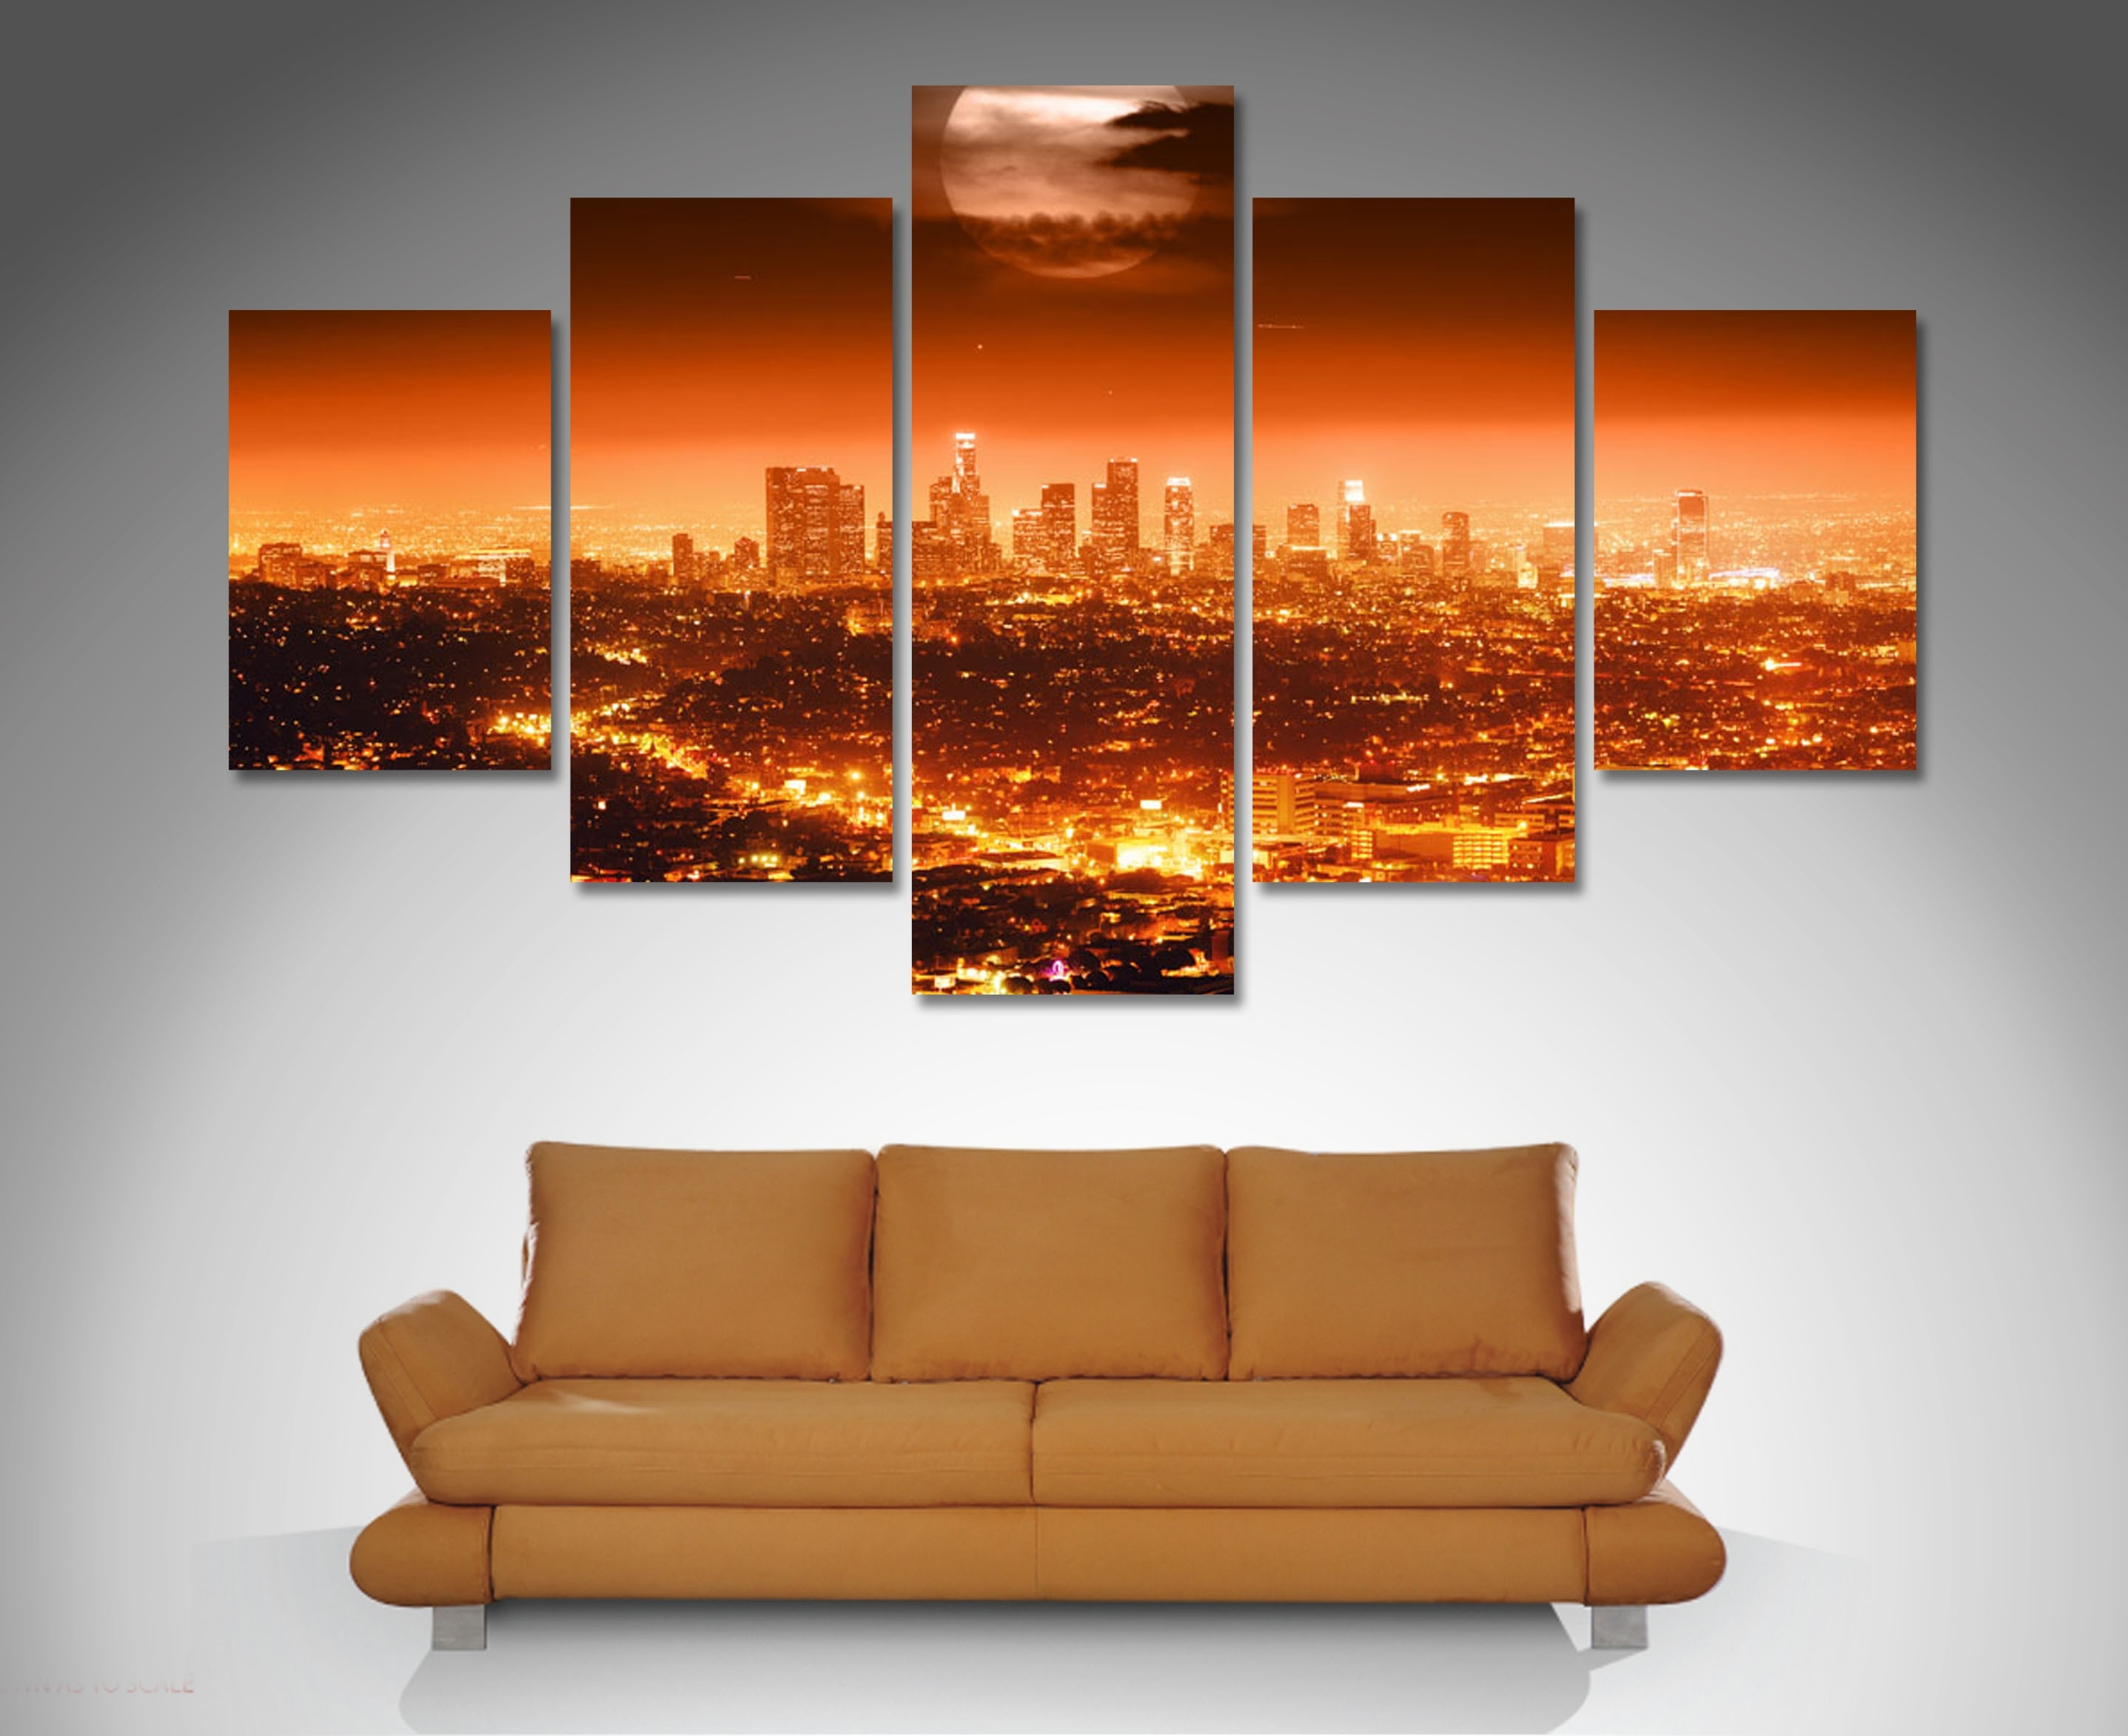 Los Angeles 5 Panel Diamond Shape Canvas Prints Http://www With Regard To Current Brisbane Abstract Wall Art (View 20 of 20)